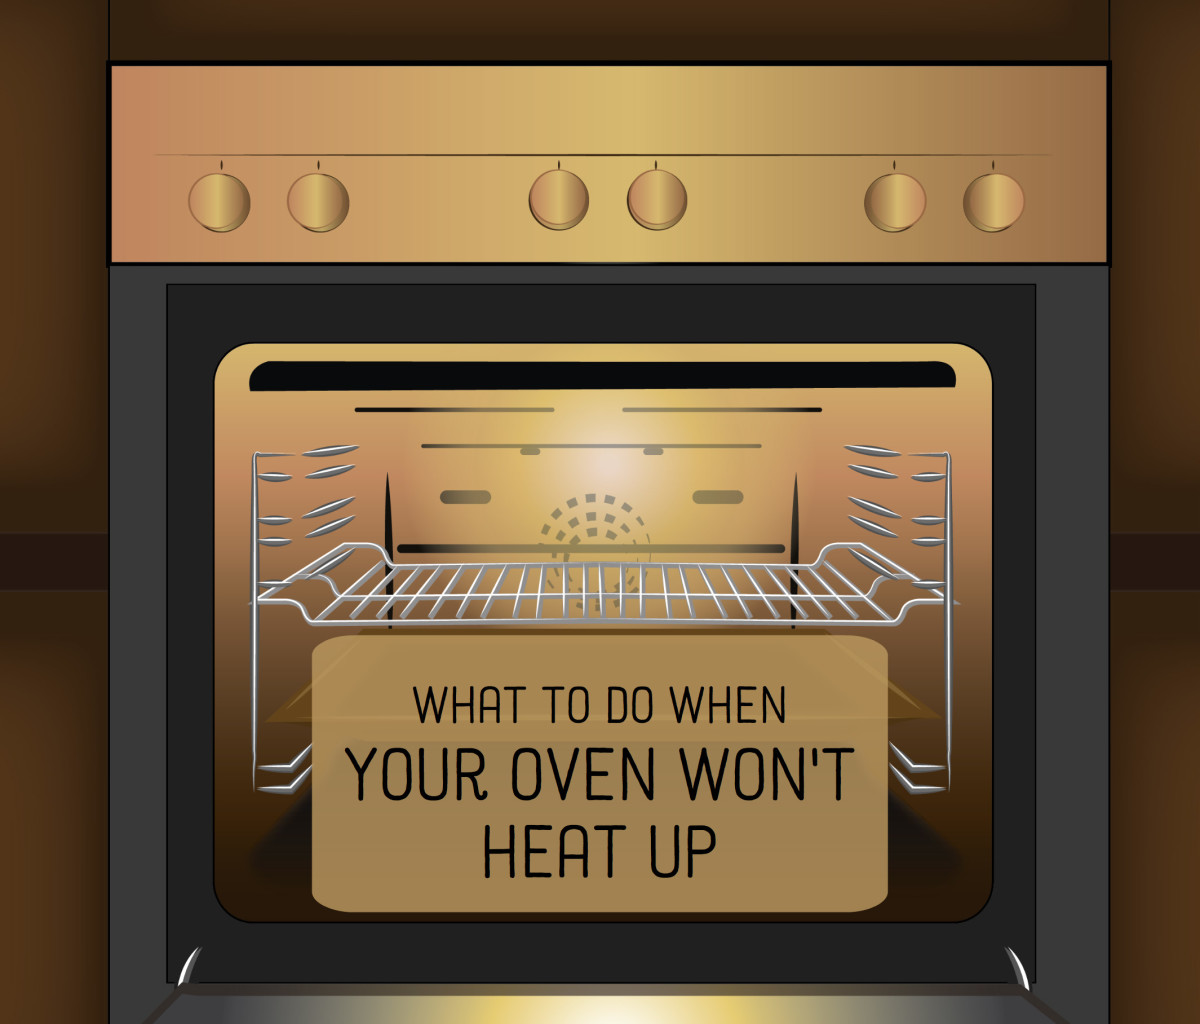 When an electric oven won't heat up, it's usually a faulty heating element. For a gas oven, it may be the bake ignitor.